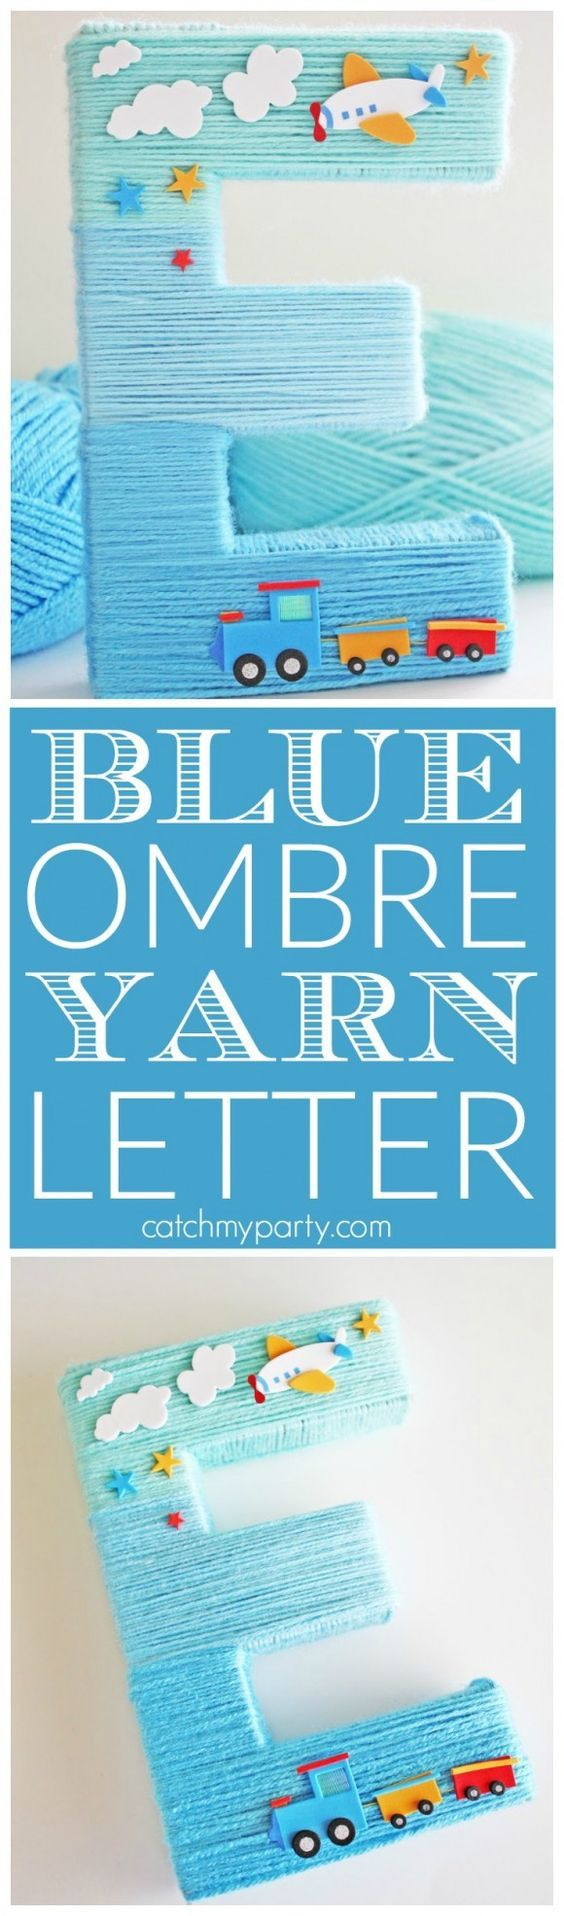 Blue Yarn-Wrapped Ombre Monogram Letter! This is perfect for a boy 1st birthday, boy baby shower or boy nursery decoration. Also, use the DIY to make one as a baby shower gift! | CatchMyParty.com